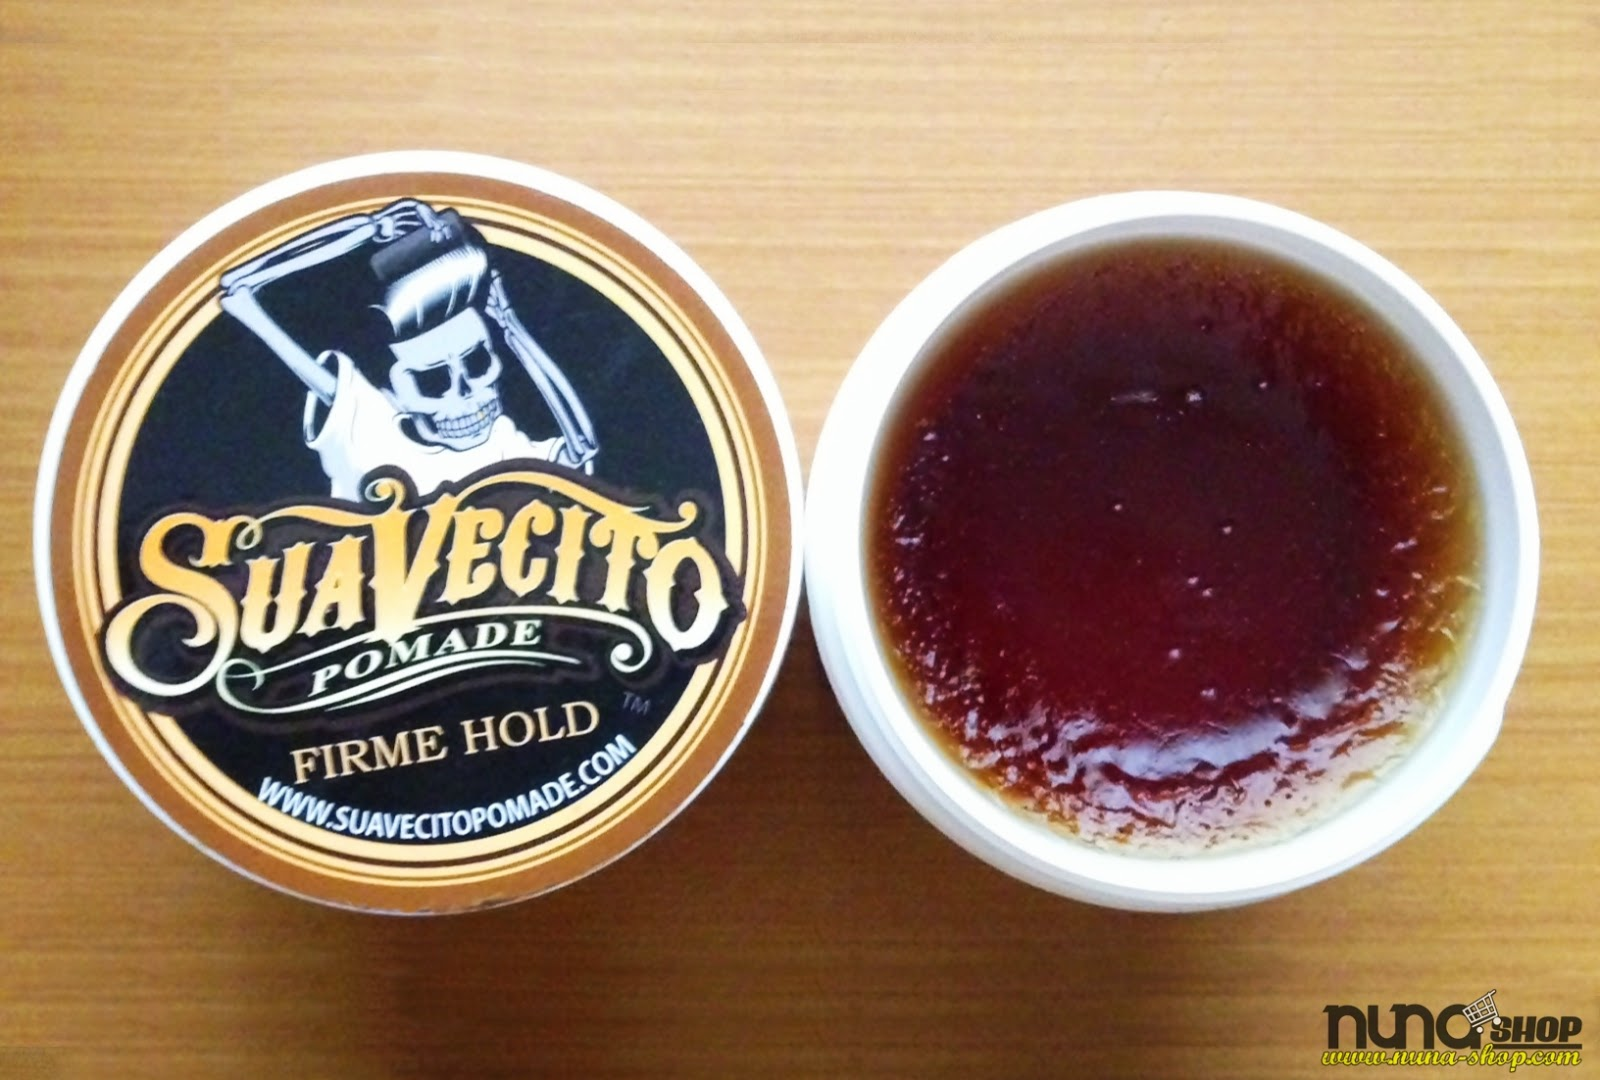 SUAVECITO Firme Hold - Pomade Shop Indonesia